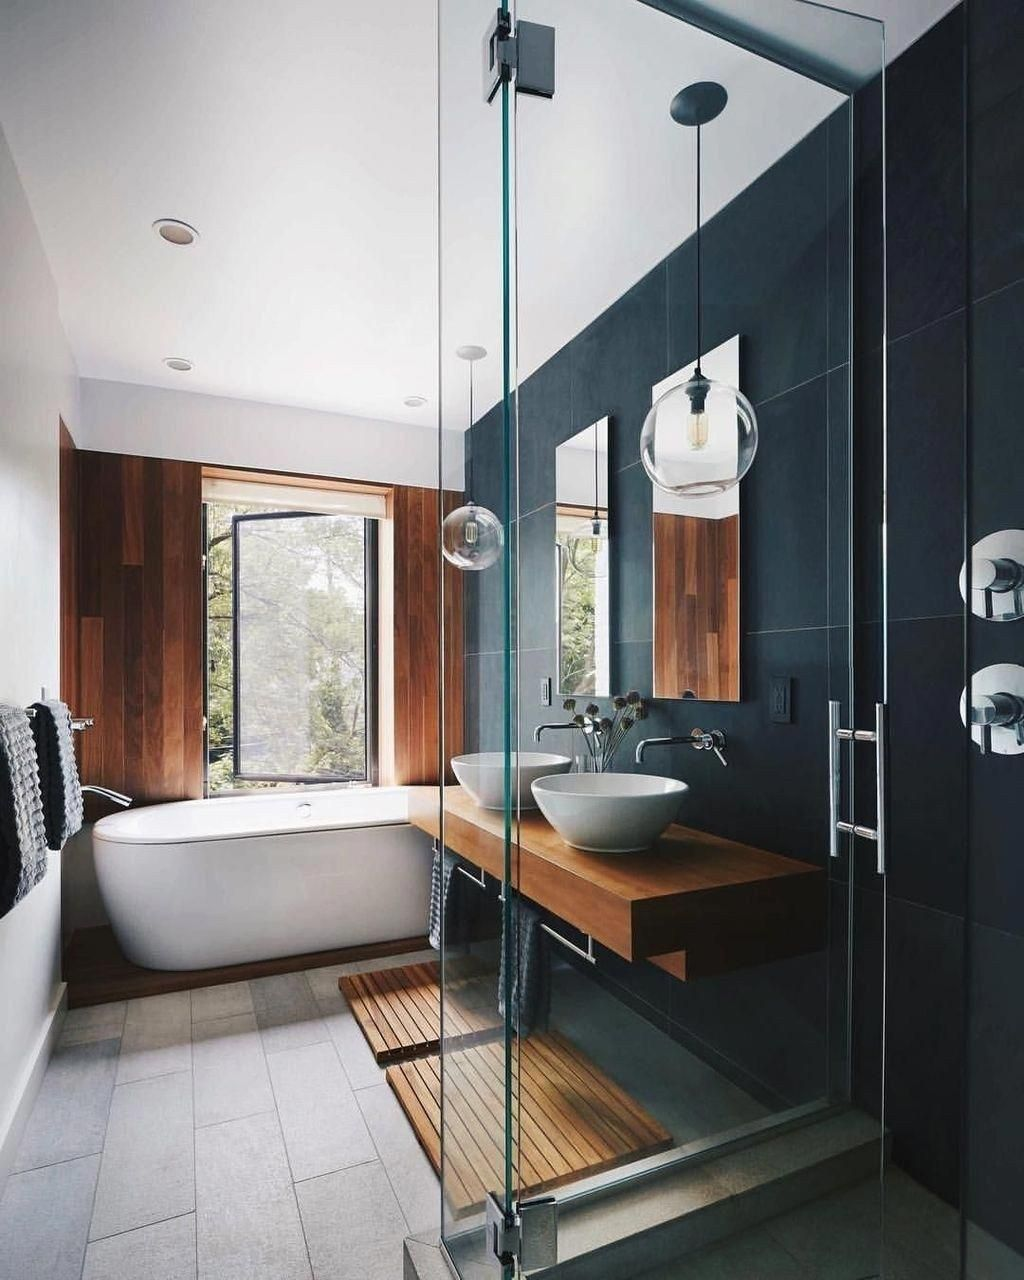 10 Tips To Revamp Your Bathroom At A Low Price Bagno Interno